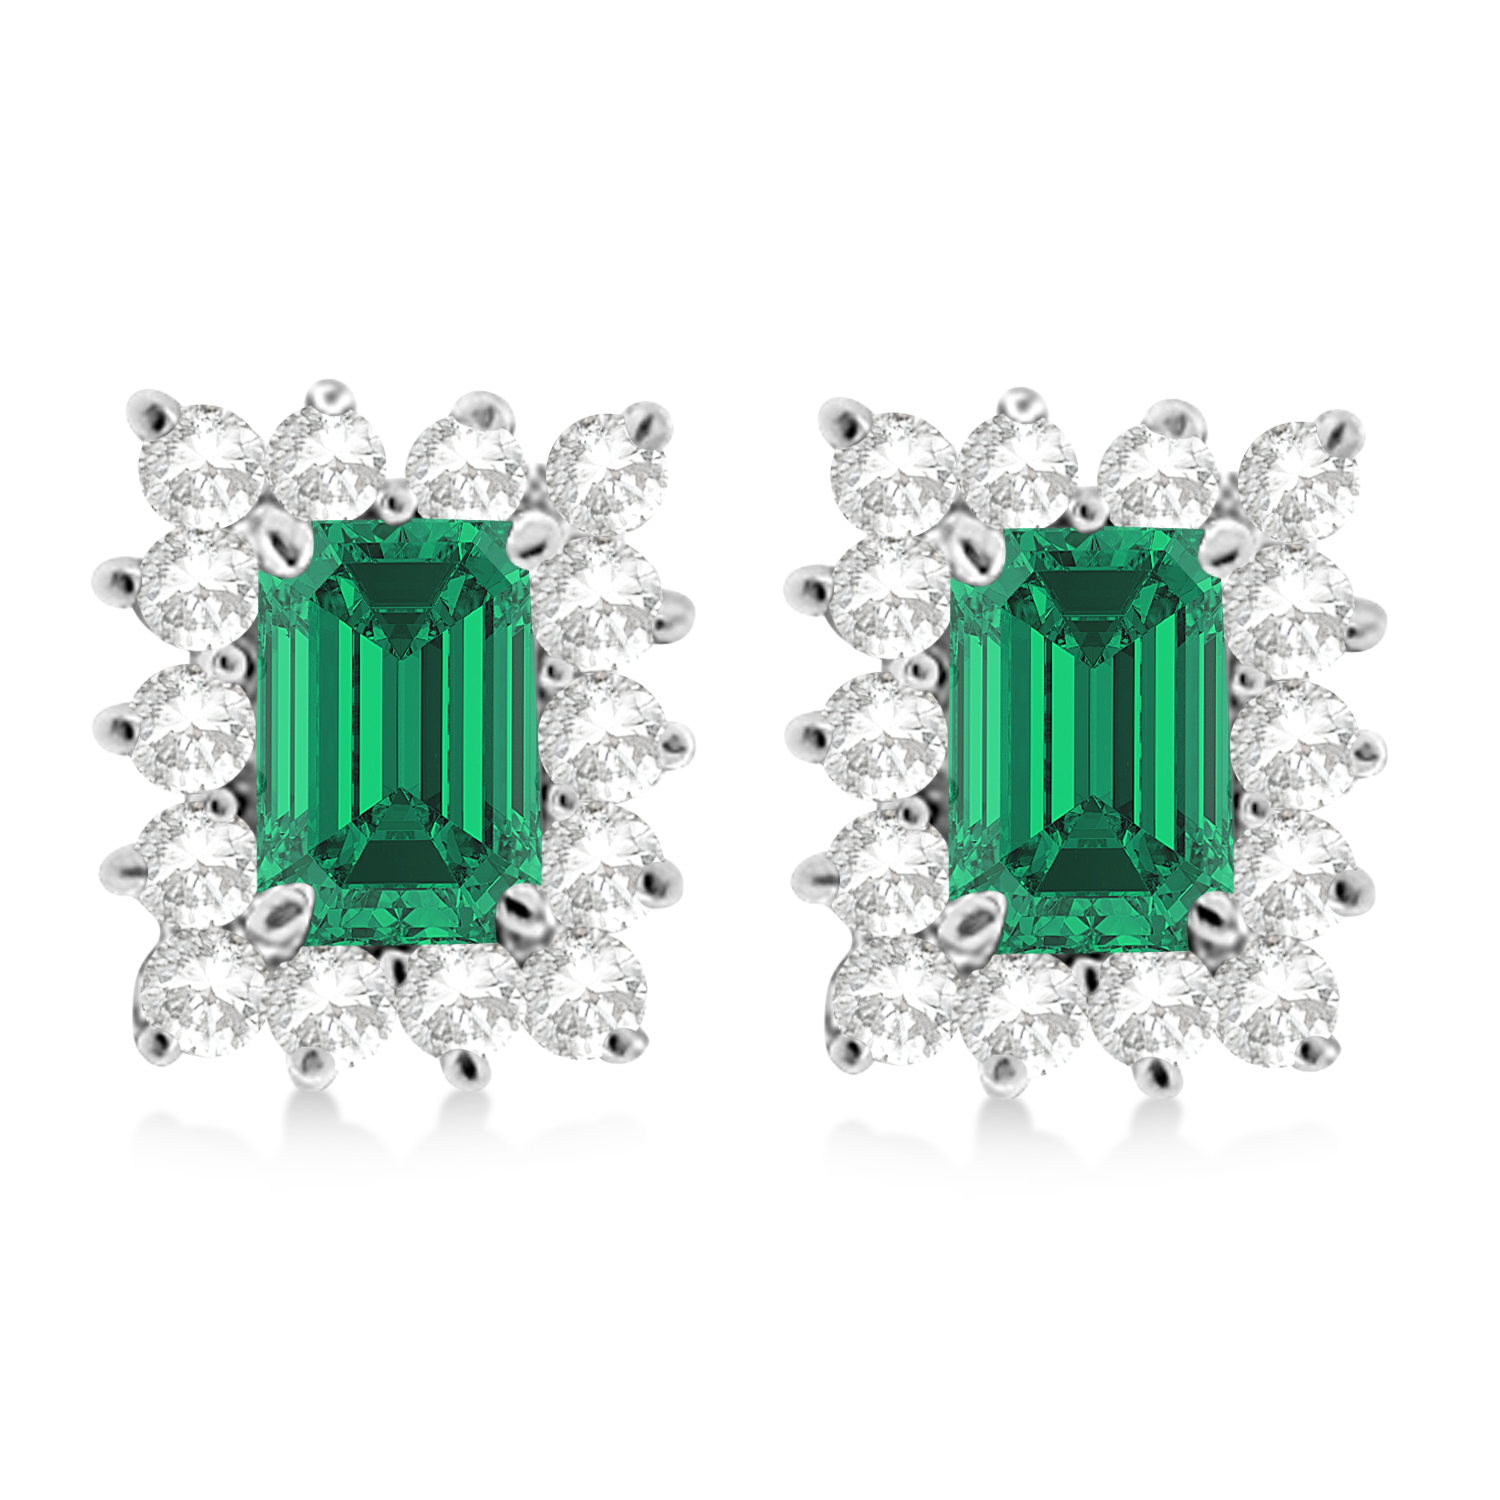 Emerald-Cut Emerald & Diamond Stud Earrings 14k White Gold (1.80ctw)